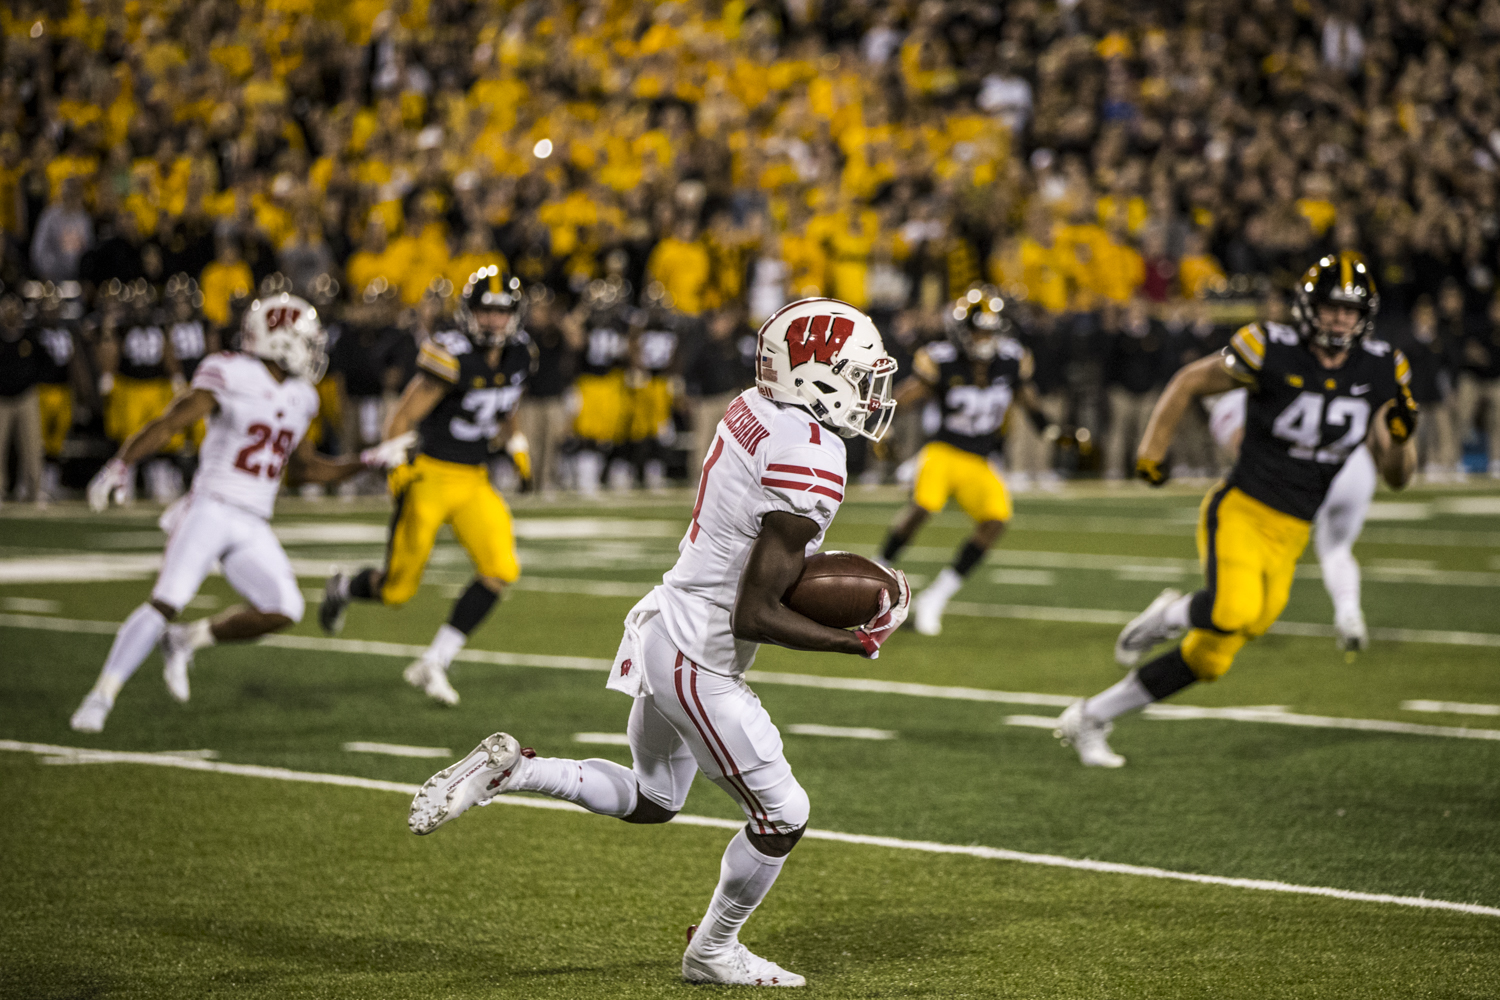 Wisconsin+wide+reciever+Aron+Cruikshank+returns+a+kickoff+during+Iowa%27s+game+against+Wisconsin+at+Kinnick+Stadium+on+Saturday%2C+September+22%2C+2018.+The+Badgers+defeated+the+Hawkeyes+28-17.